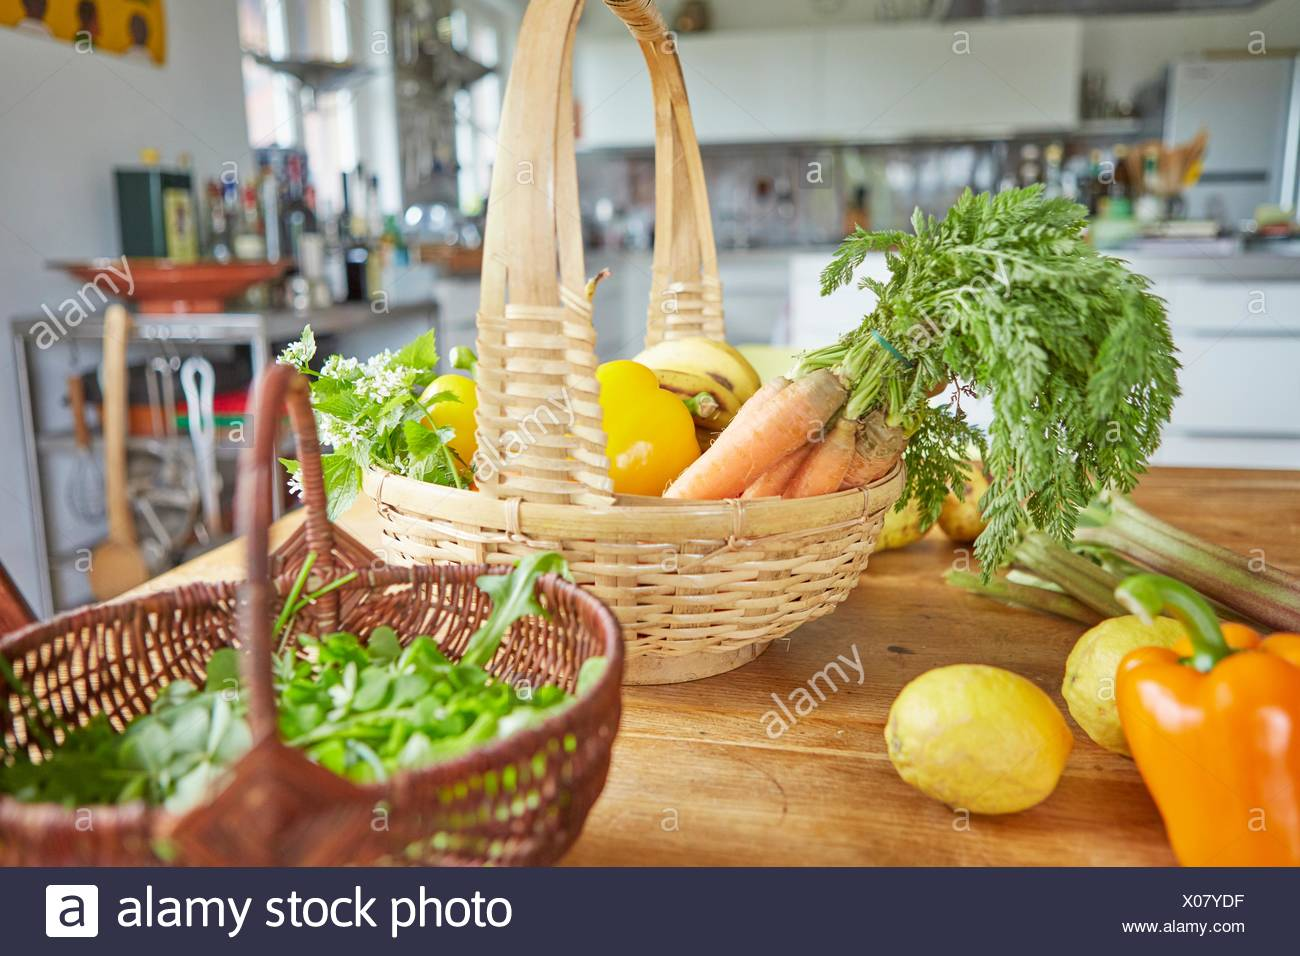 Still life of garden produce, in baskets on table in kitchen - Stock Image